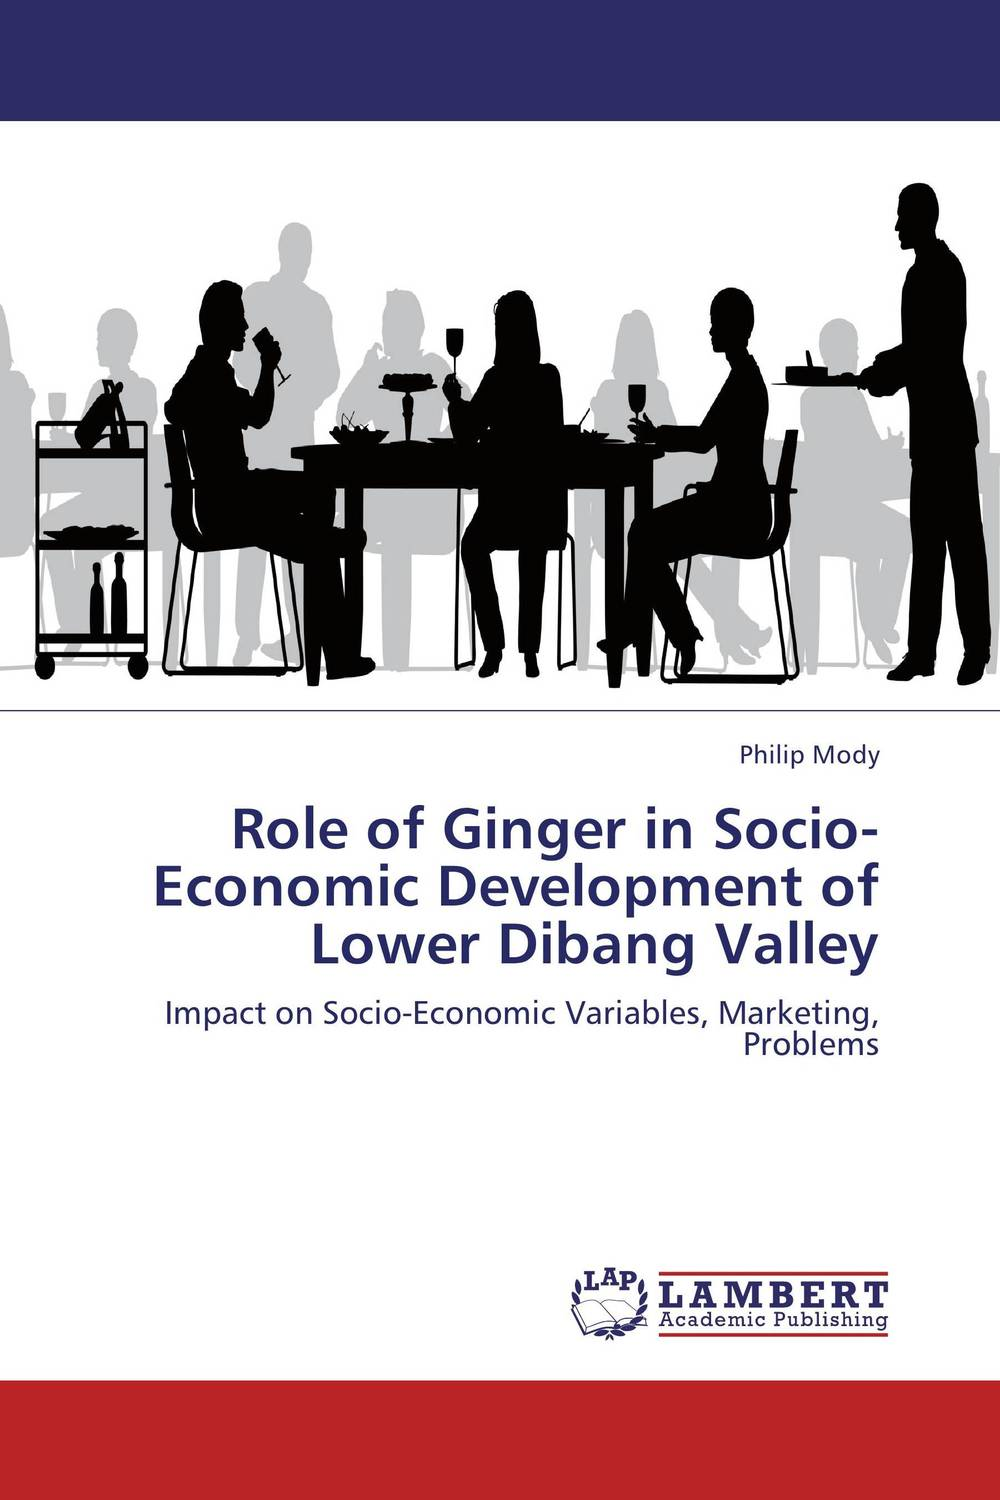 Role of Ginger in Socio-Economic Development of Lower Dibang Valley rakesh kumar emerging role of civil society in development of botswana